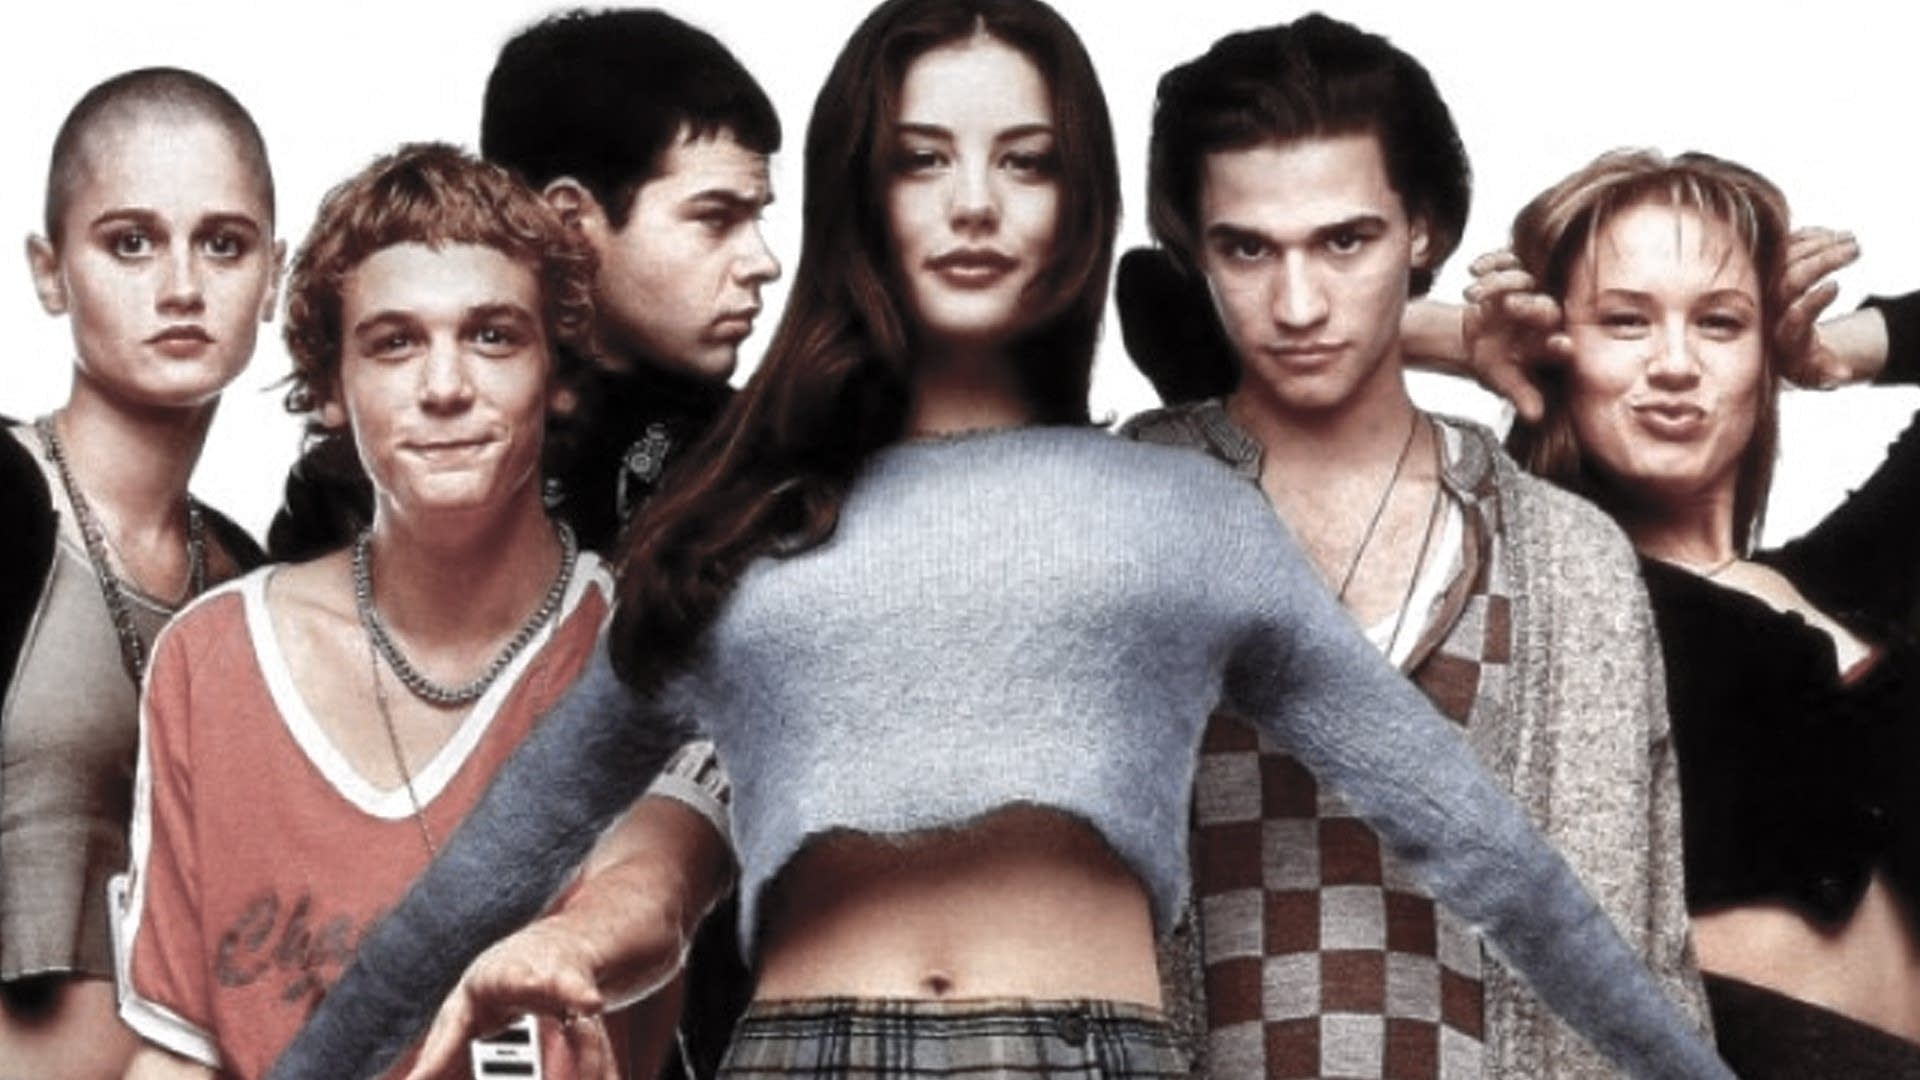 'Empire Records' promotional image.